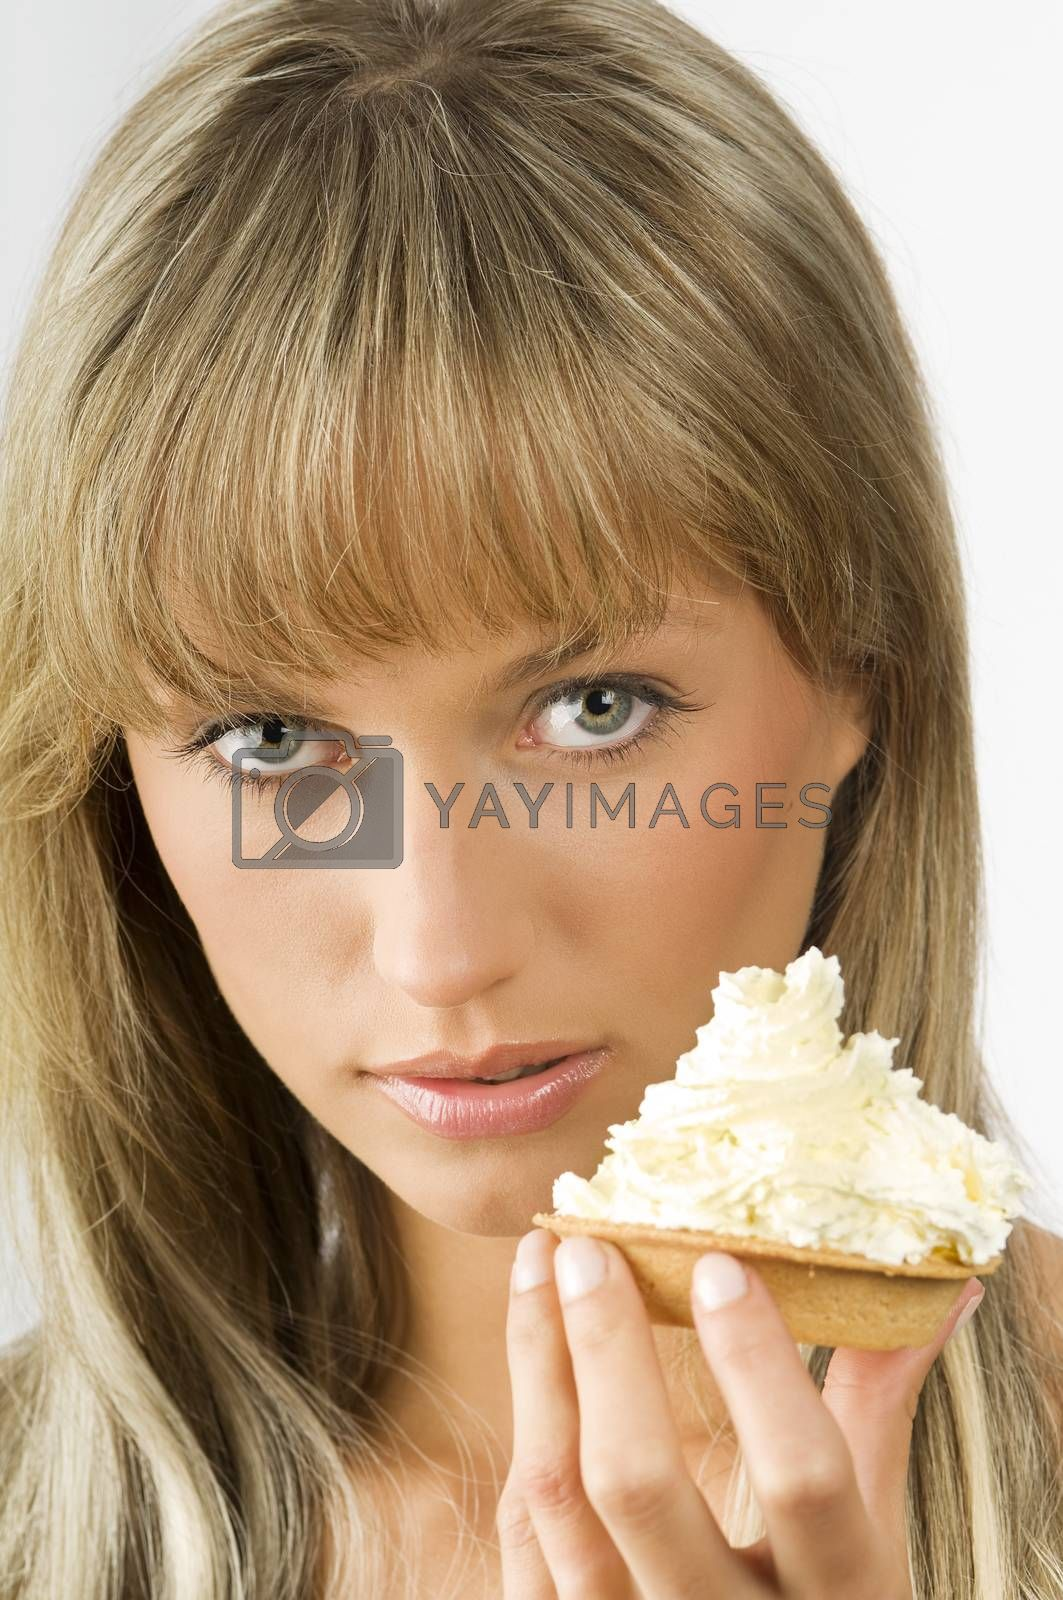 Royalty free image of sweet and soft cream by fotoCD